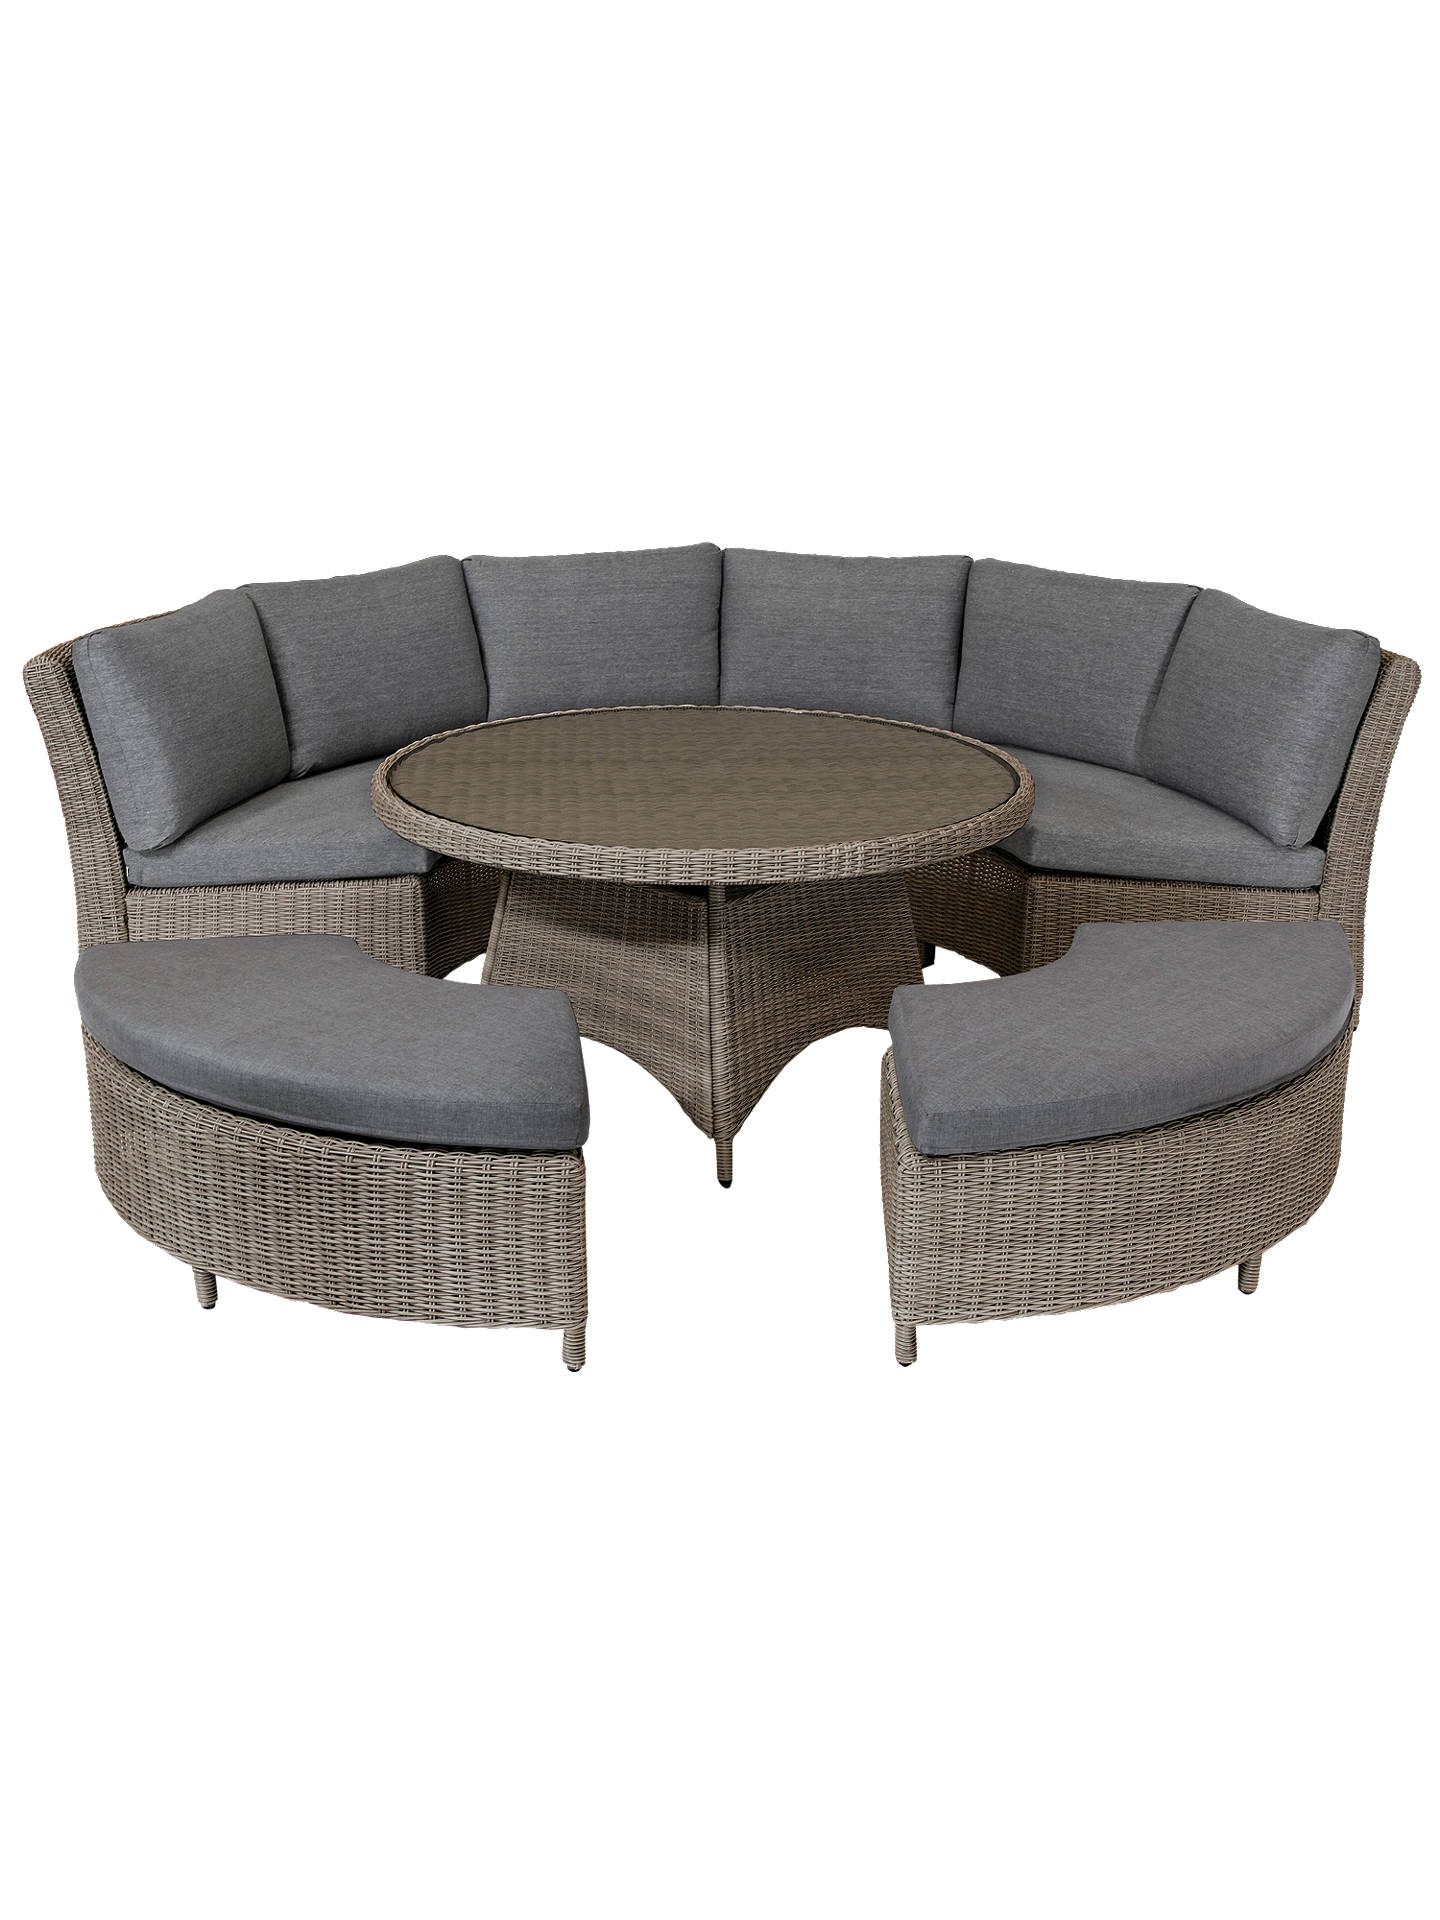 Buy KETTLER Palma 8 Seater Round Garden Dining Table and Chairs Set, Rattan Online at johnlewis.com